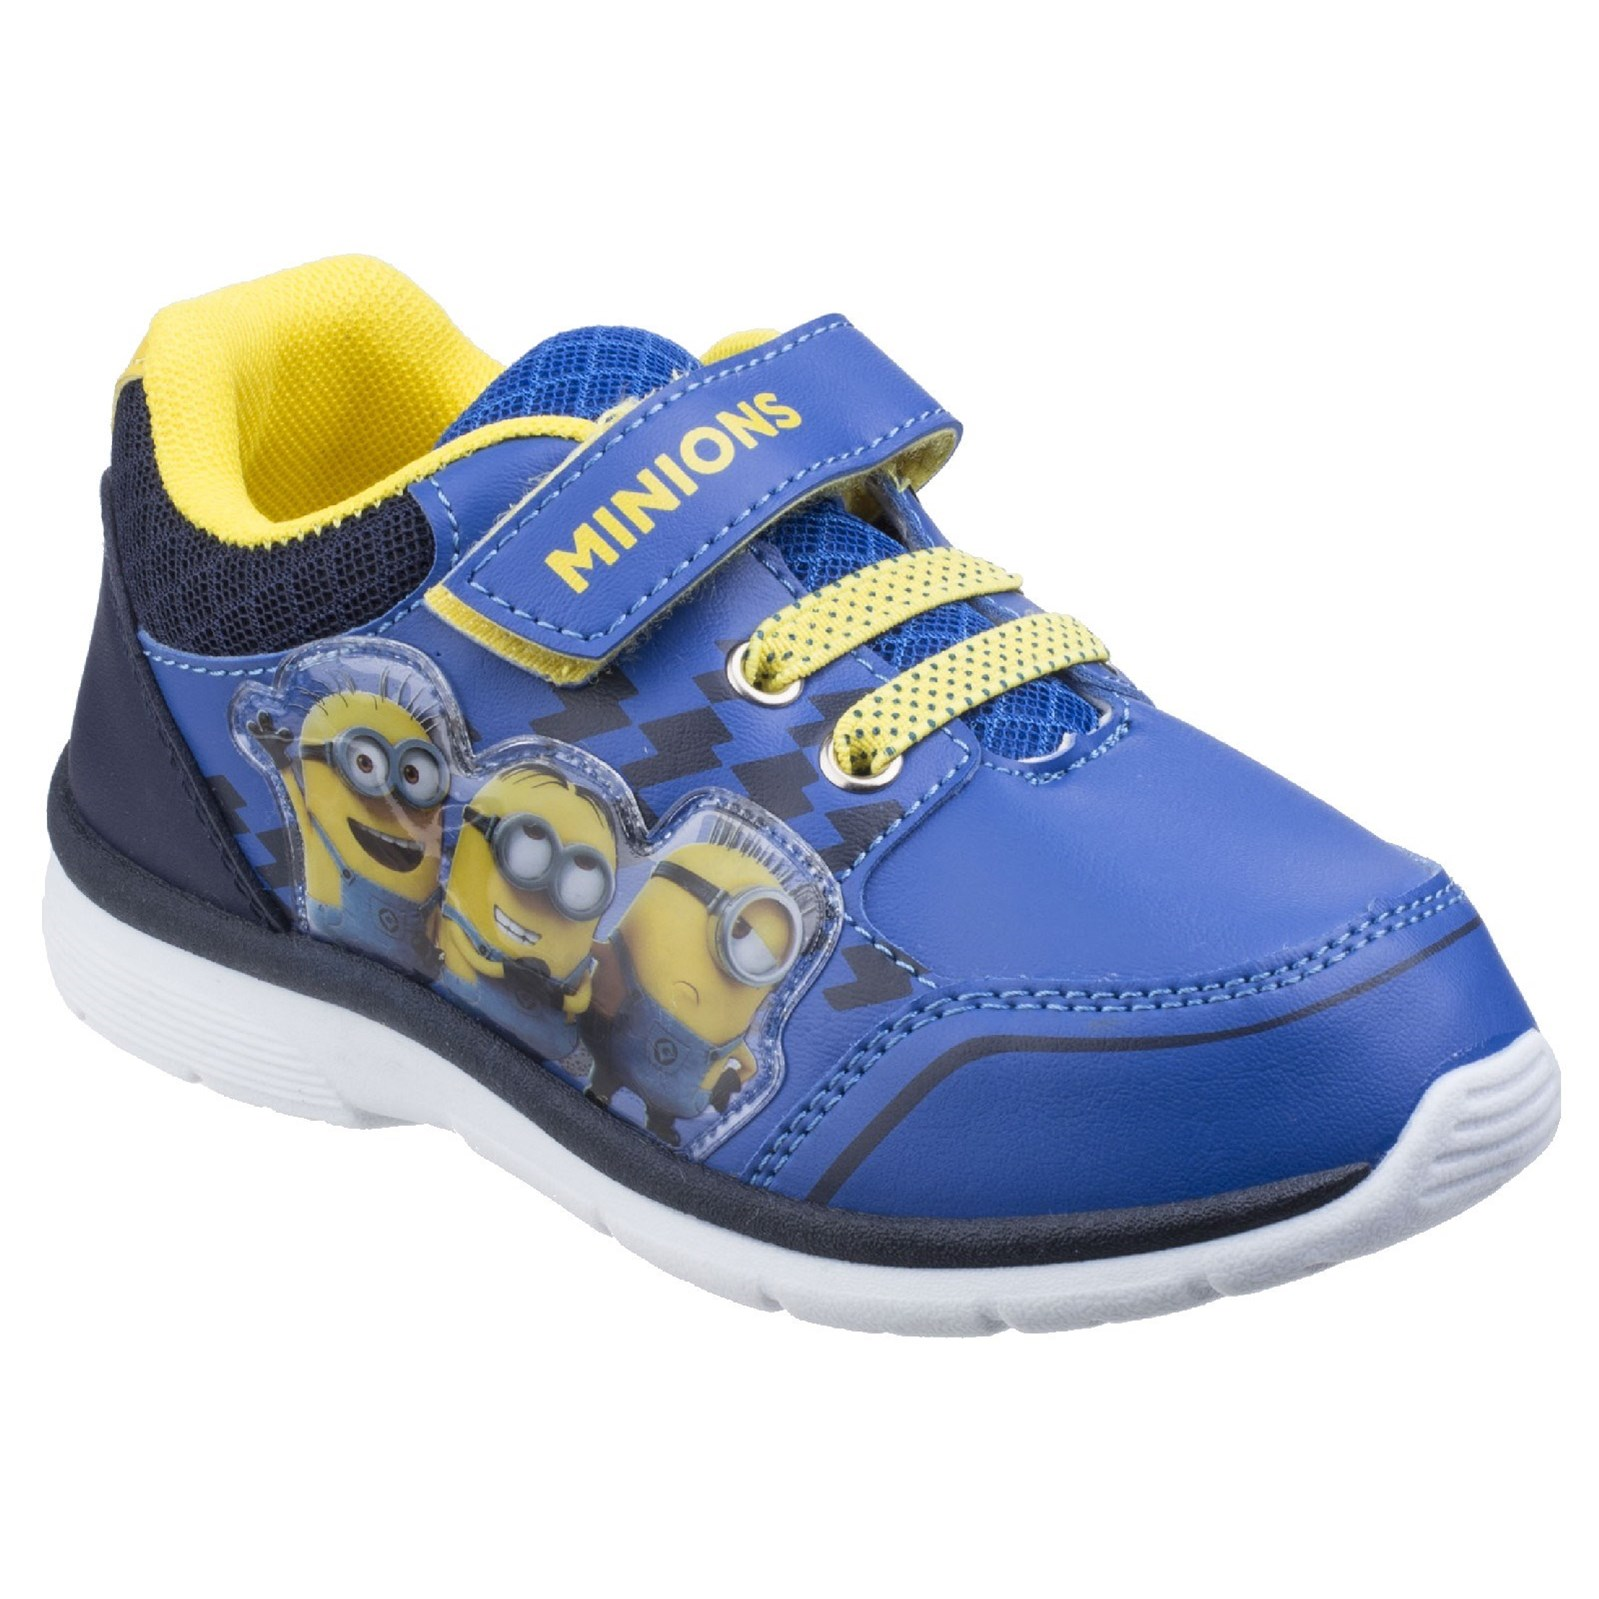 Leomil-Childrens-Boys-Official-Minions-Shoes-Trainers-FS4613